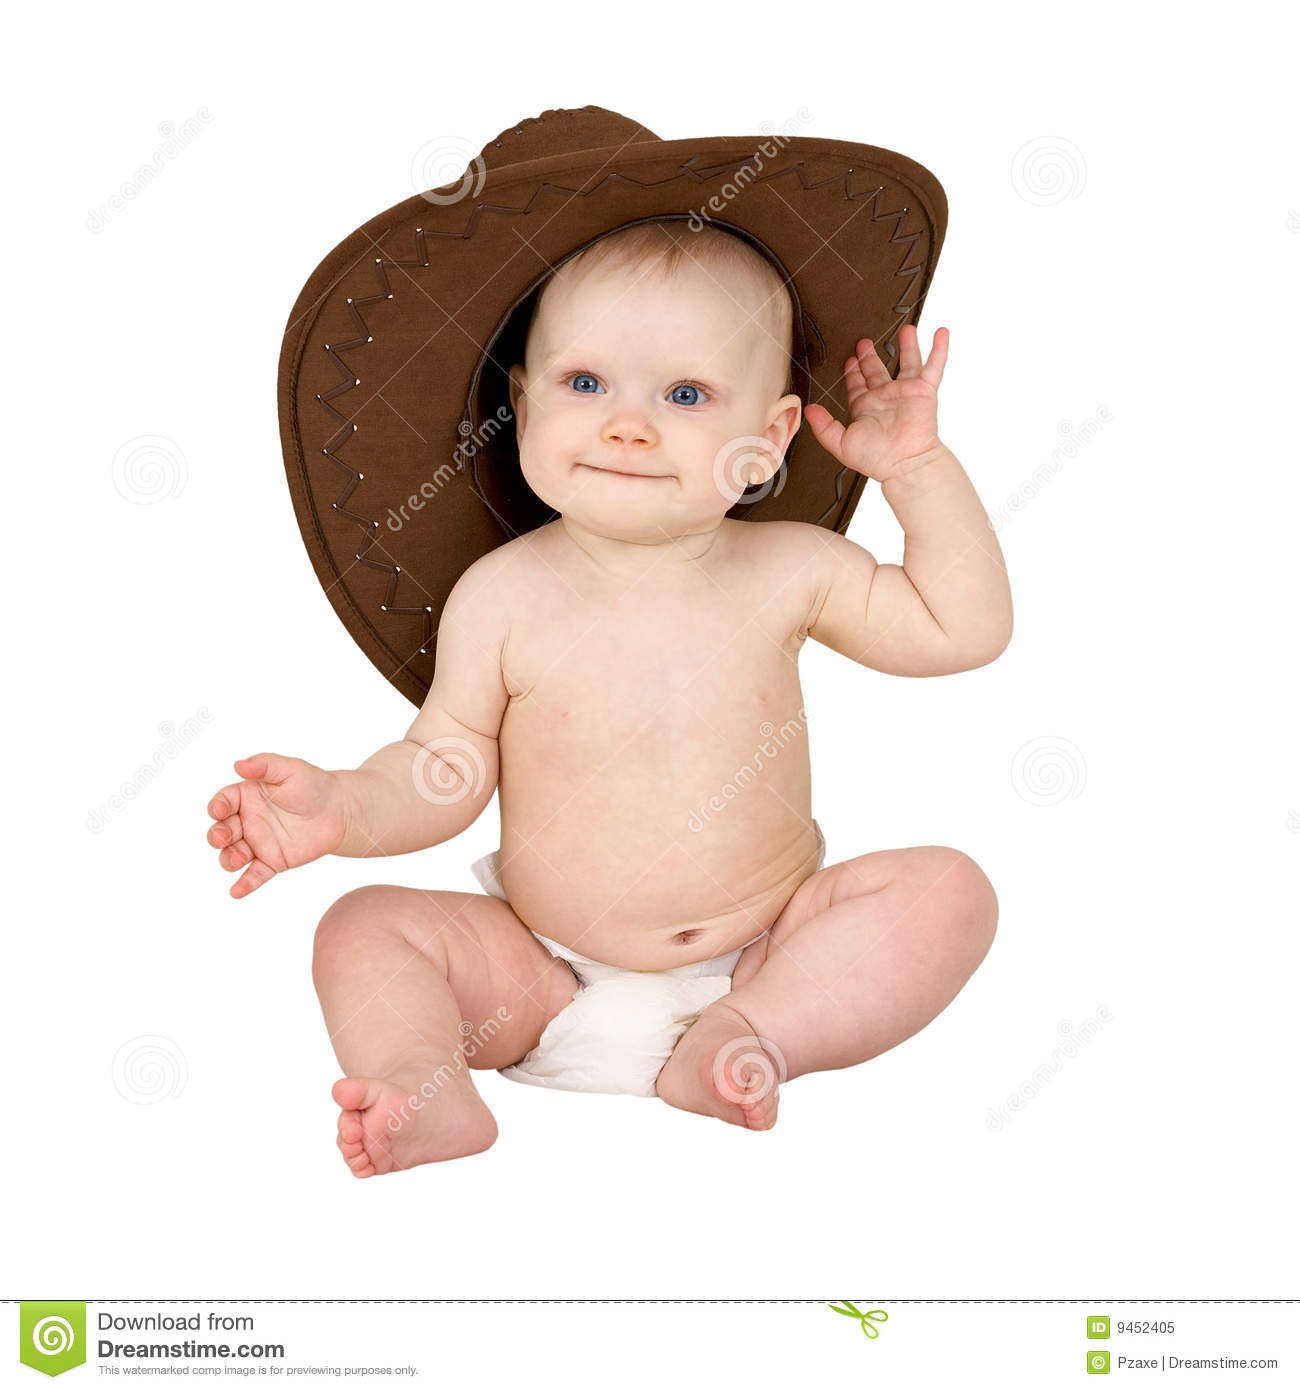 Baby in cowboy hat stock image. Image of childcare 26b770f6e47